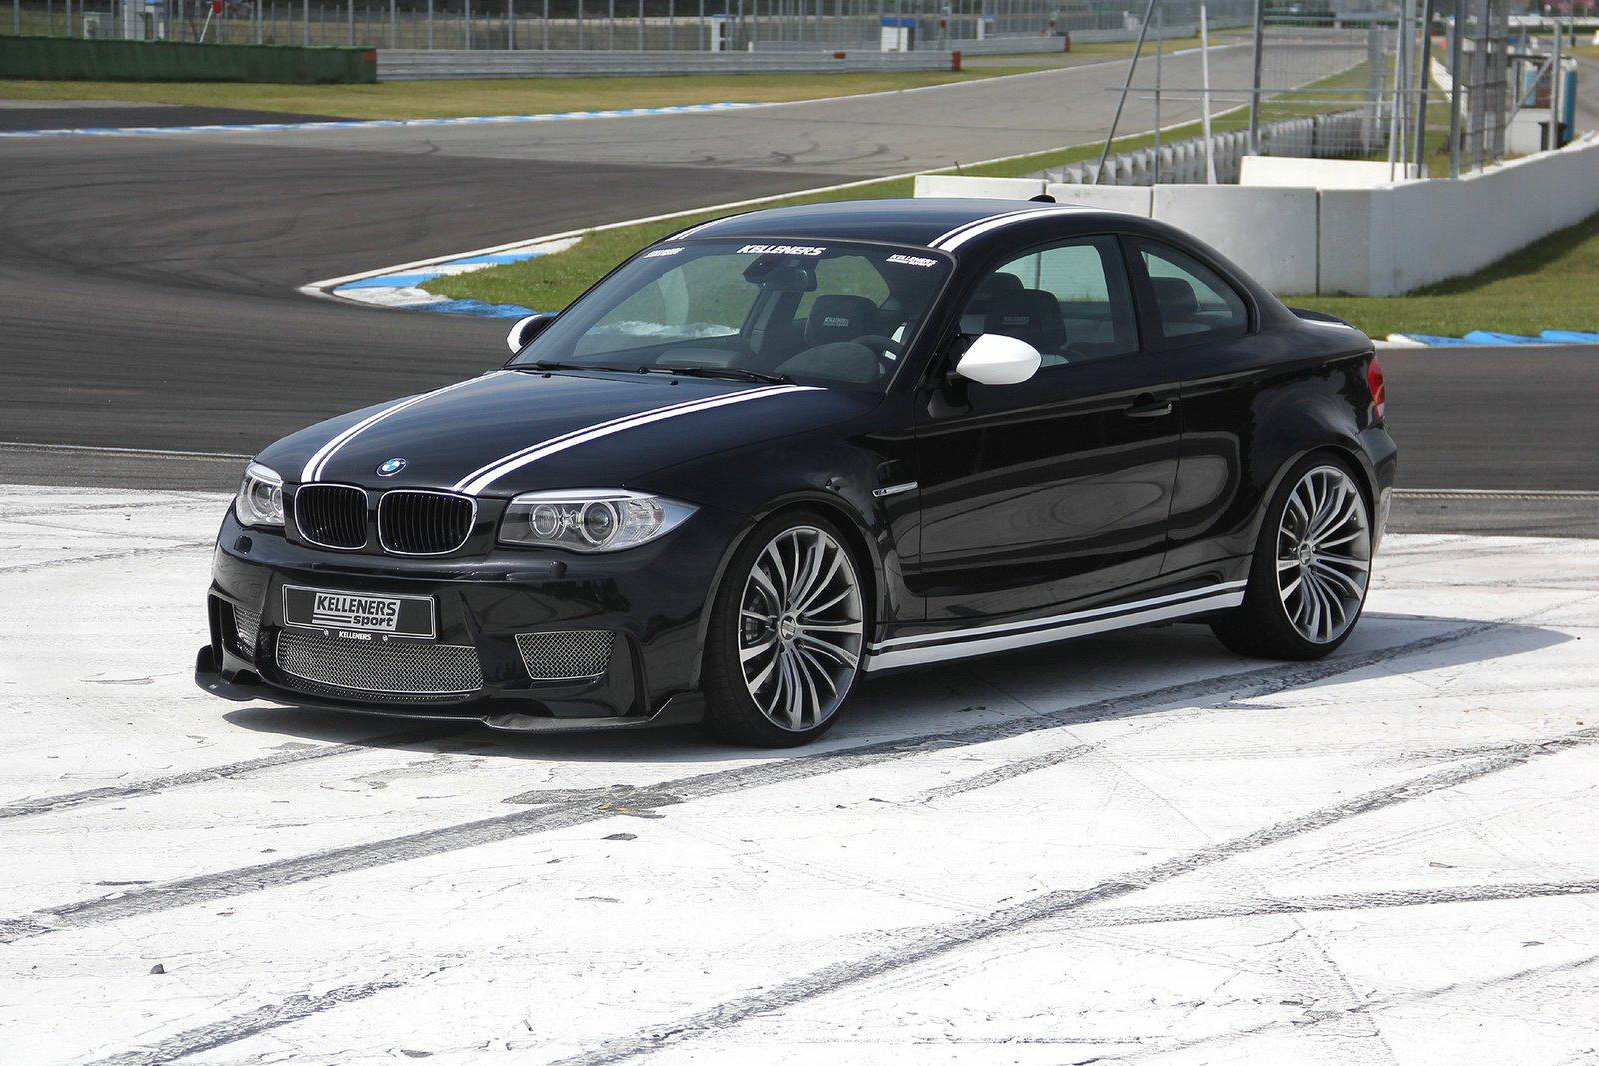 kelleners sport tuned bmw 1 series m coup. Black Bedroom Furniture Sets. Home Design Ideas